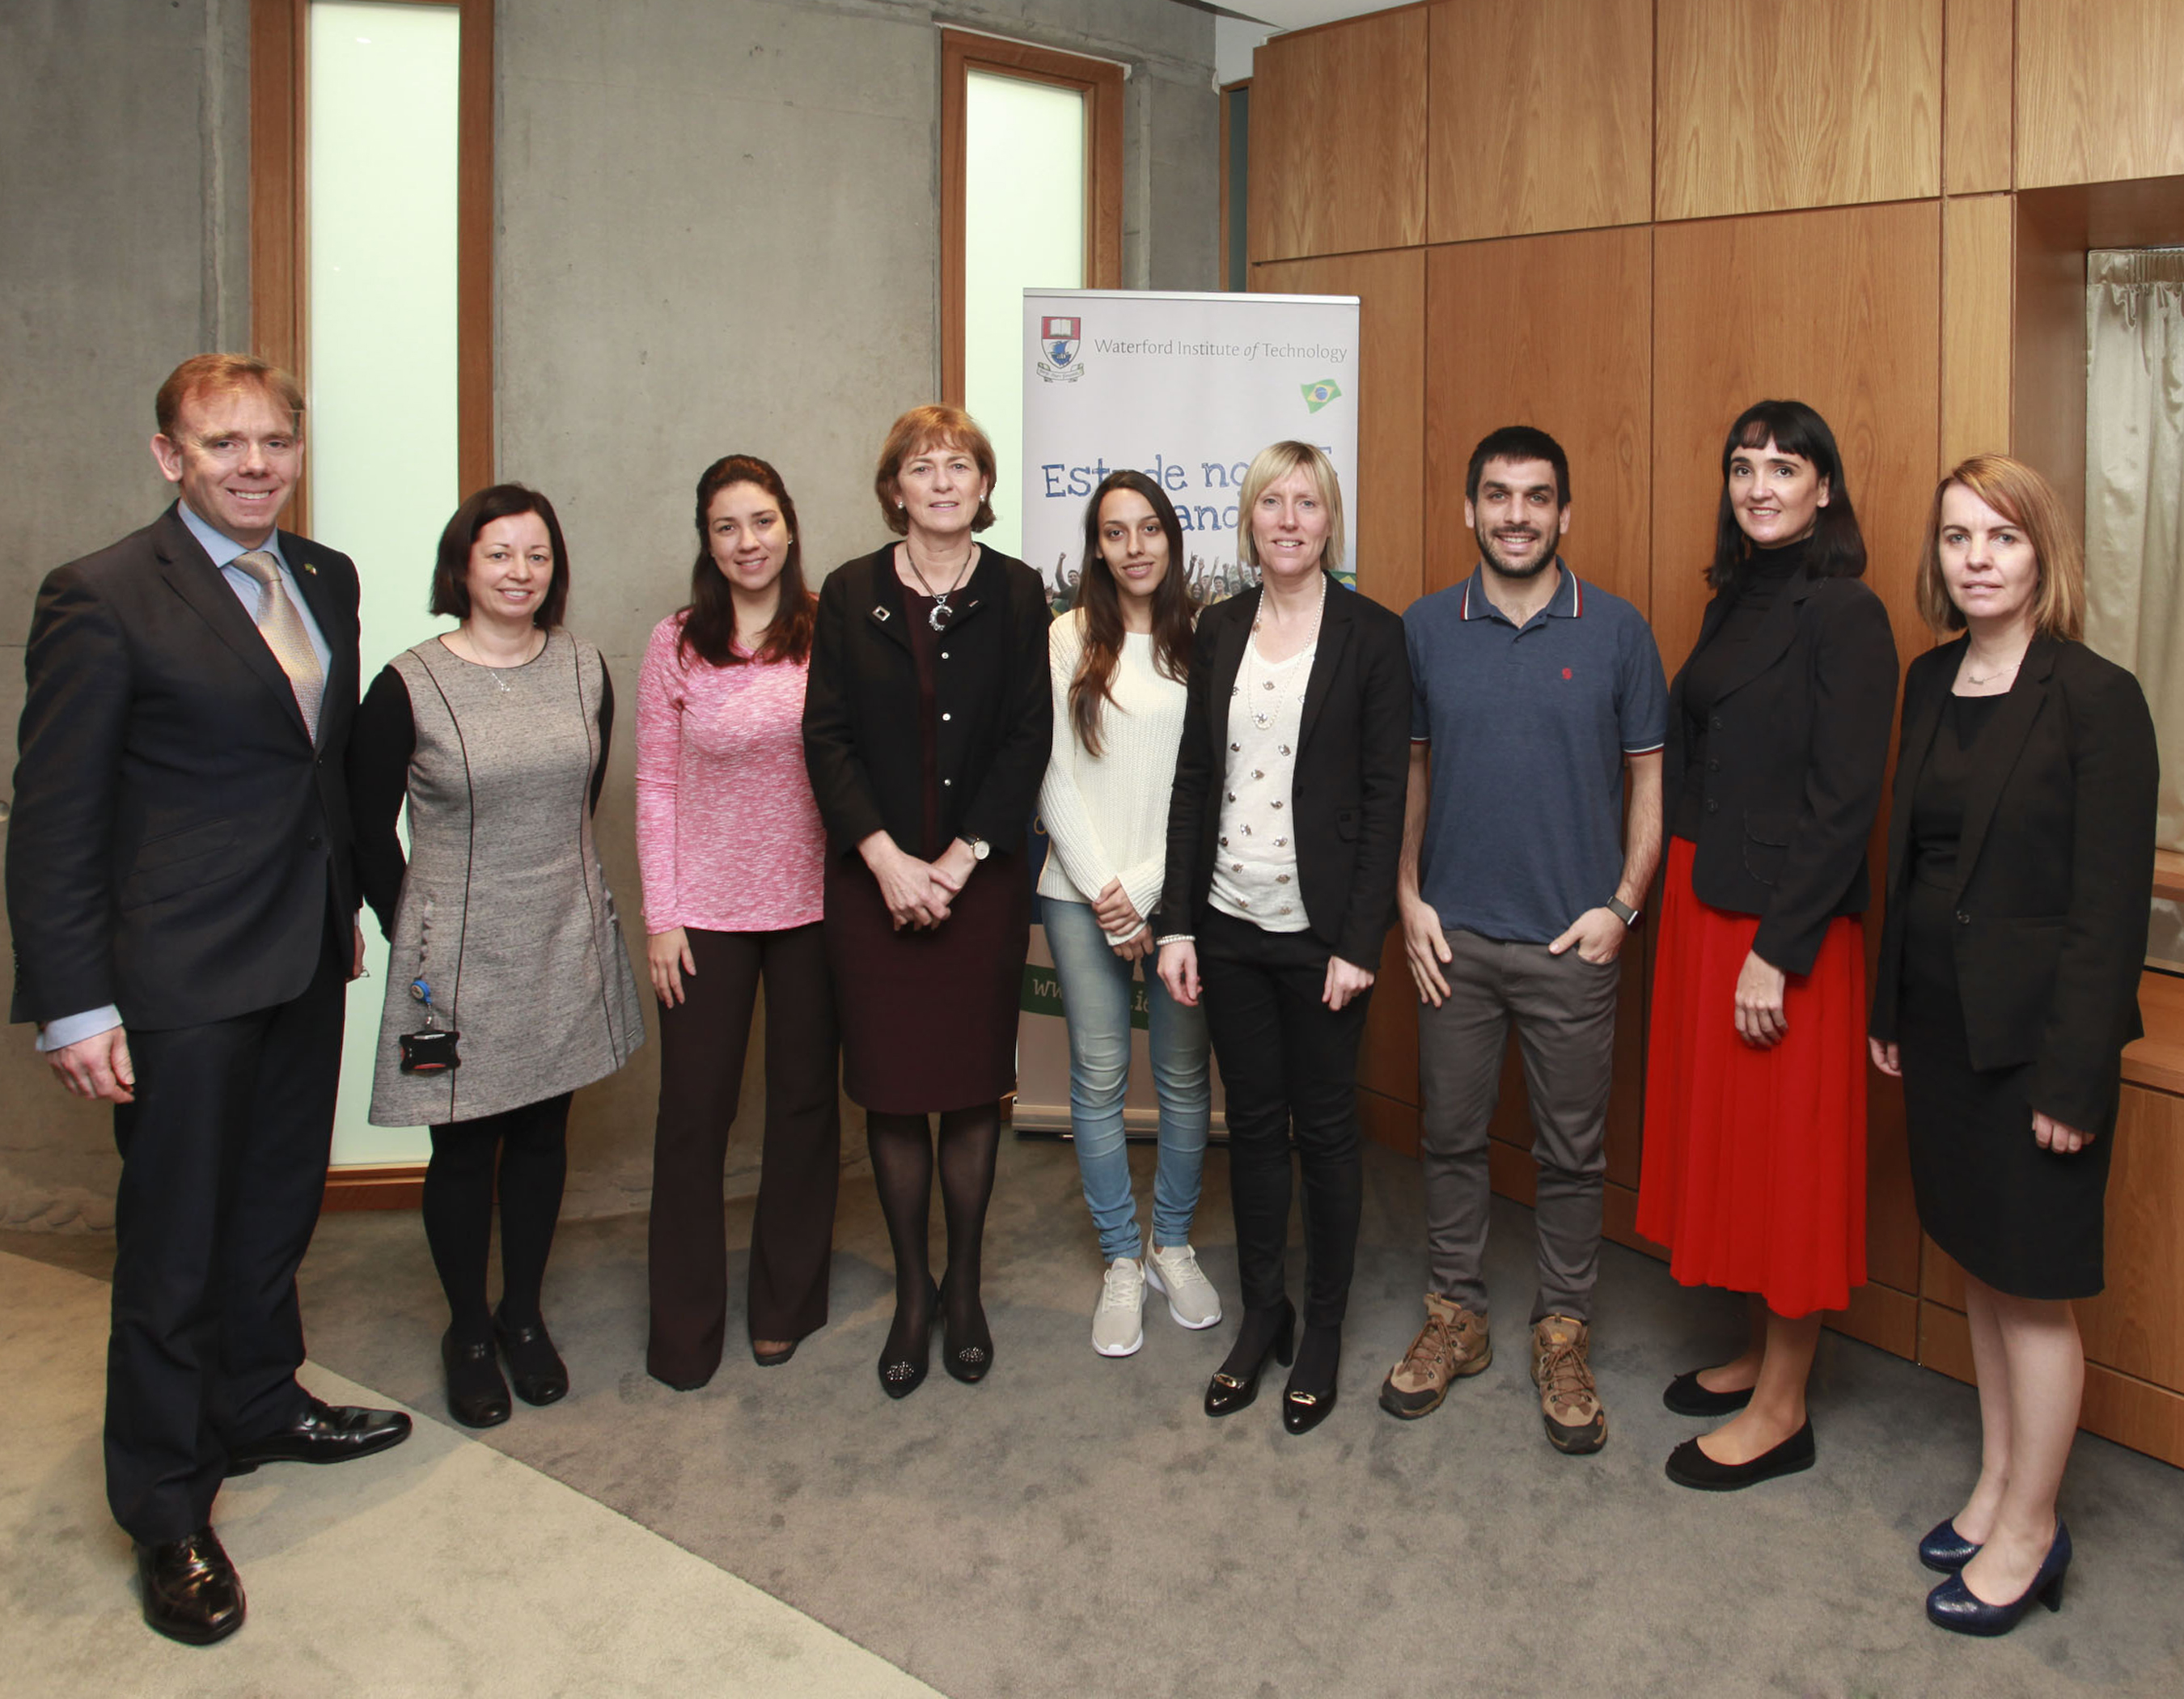 From left: Don O' Neill, WIT; Claire Fitzpatrick, WIT; Ms. Samira Marques Bossoni - Education Agent; Joan Mc Donald, Head of Department of Management and Organisation WIT; Flavia Barbosa Bernardes - Education Agent; Sinead Day, International Affairs Manager WIT; David Mandil- Education Agent; Sarah O' Sullivan, Enterprise Ireland; Fiona Purcell, International Office, WIT.